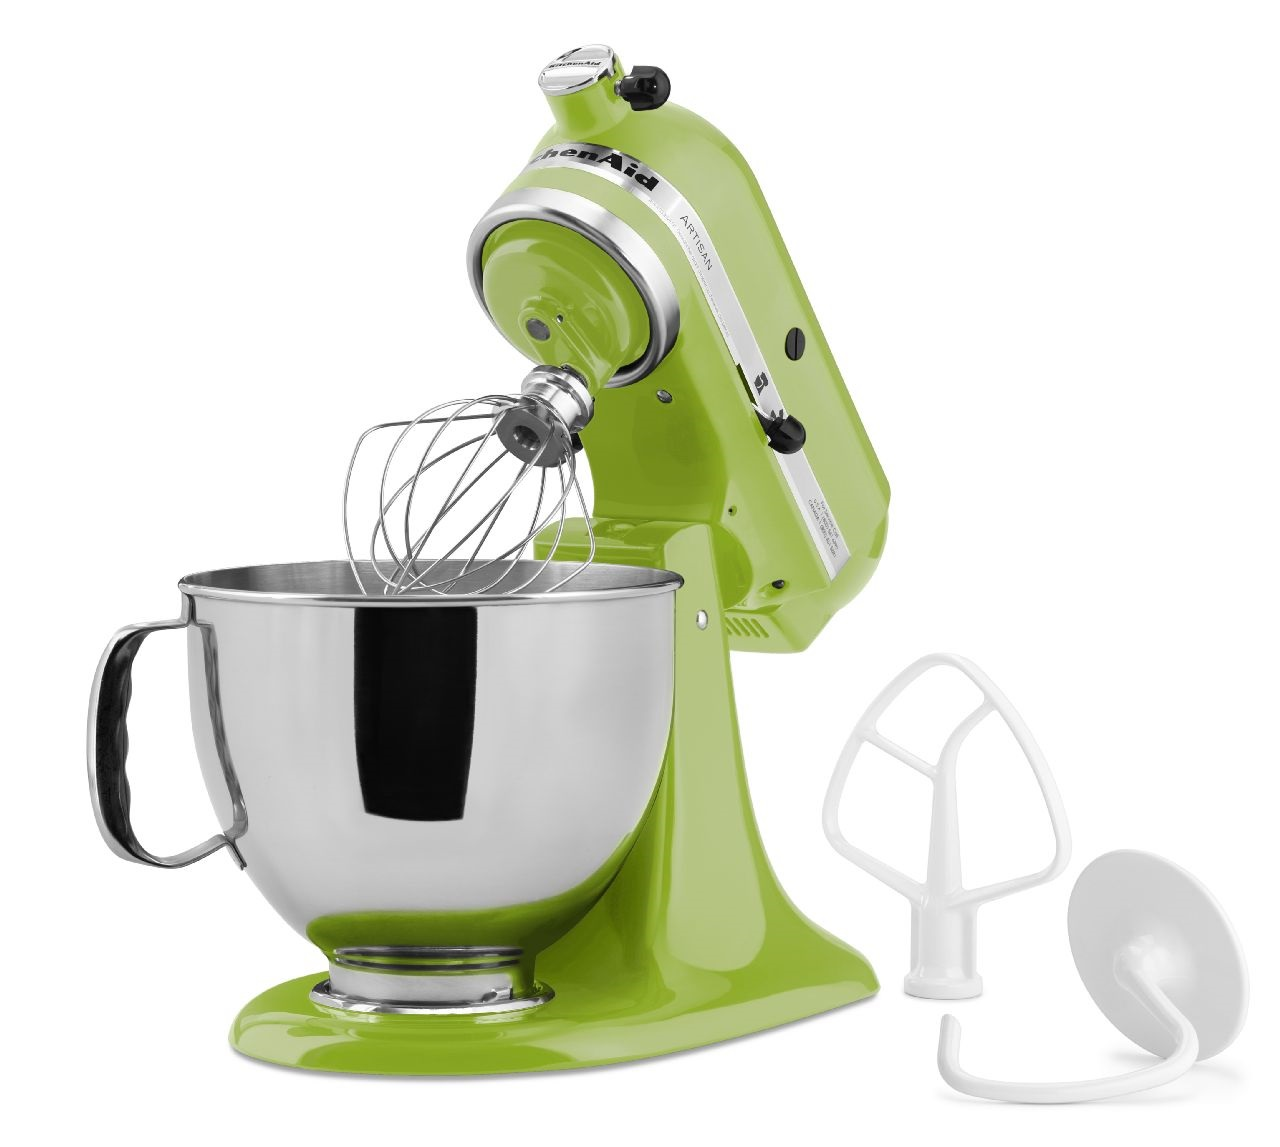 KitchenAid-Refurbished-Artisan-Series-5-Quart-Tilt-Head-Stand-Mixer-RRK150 thumbnail 51